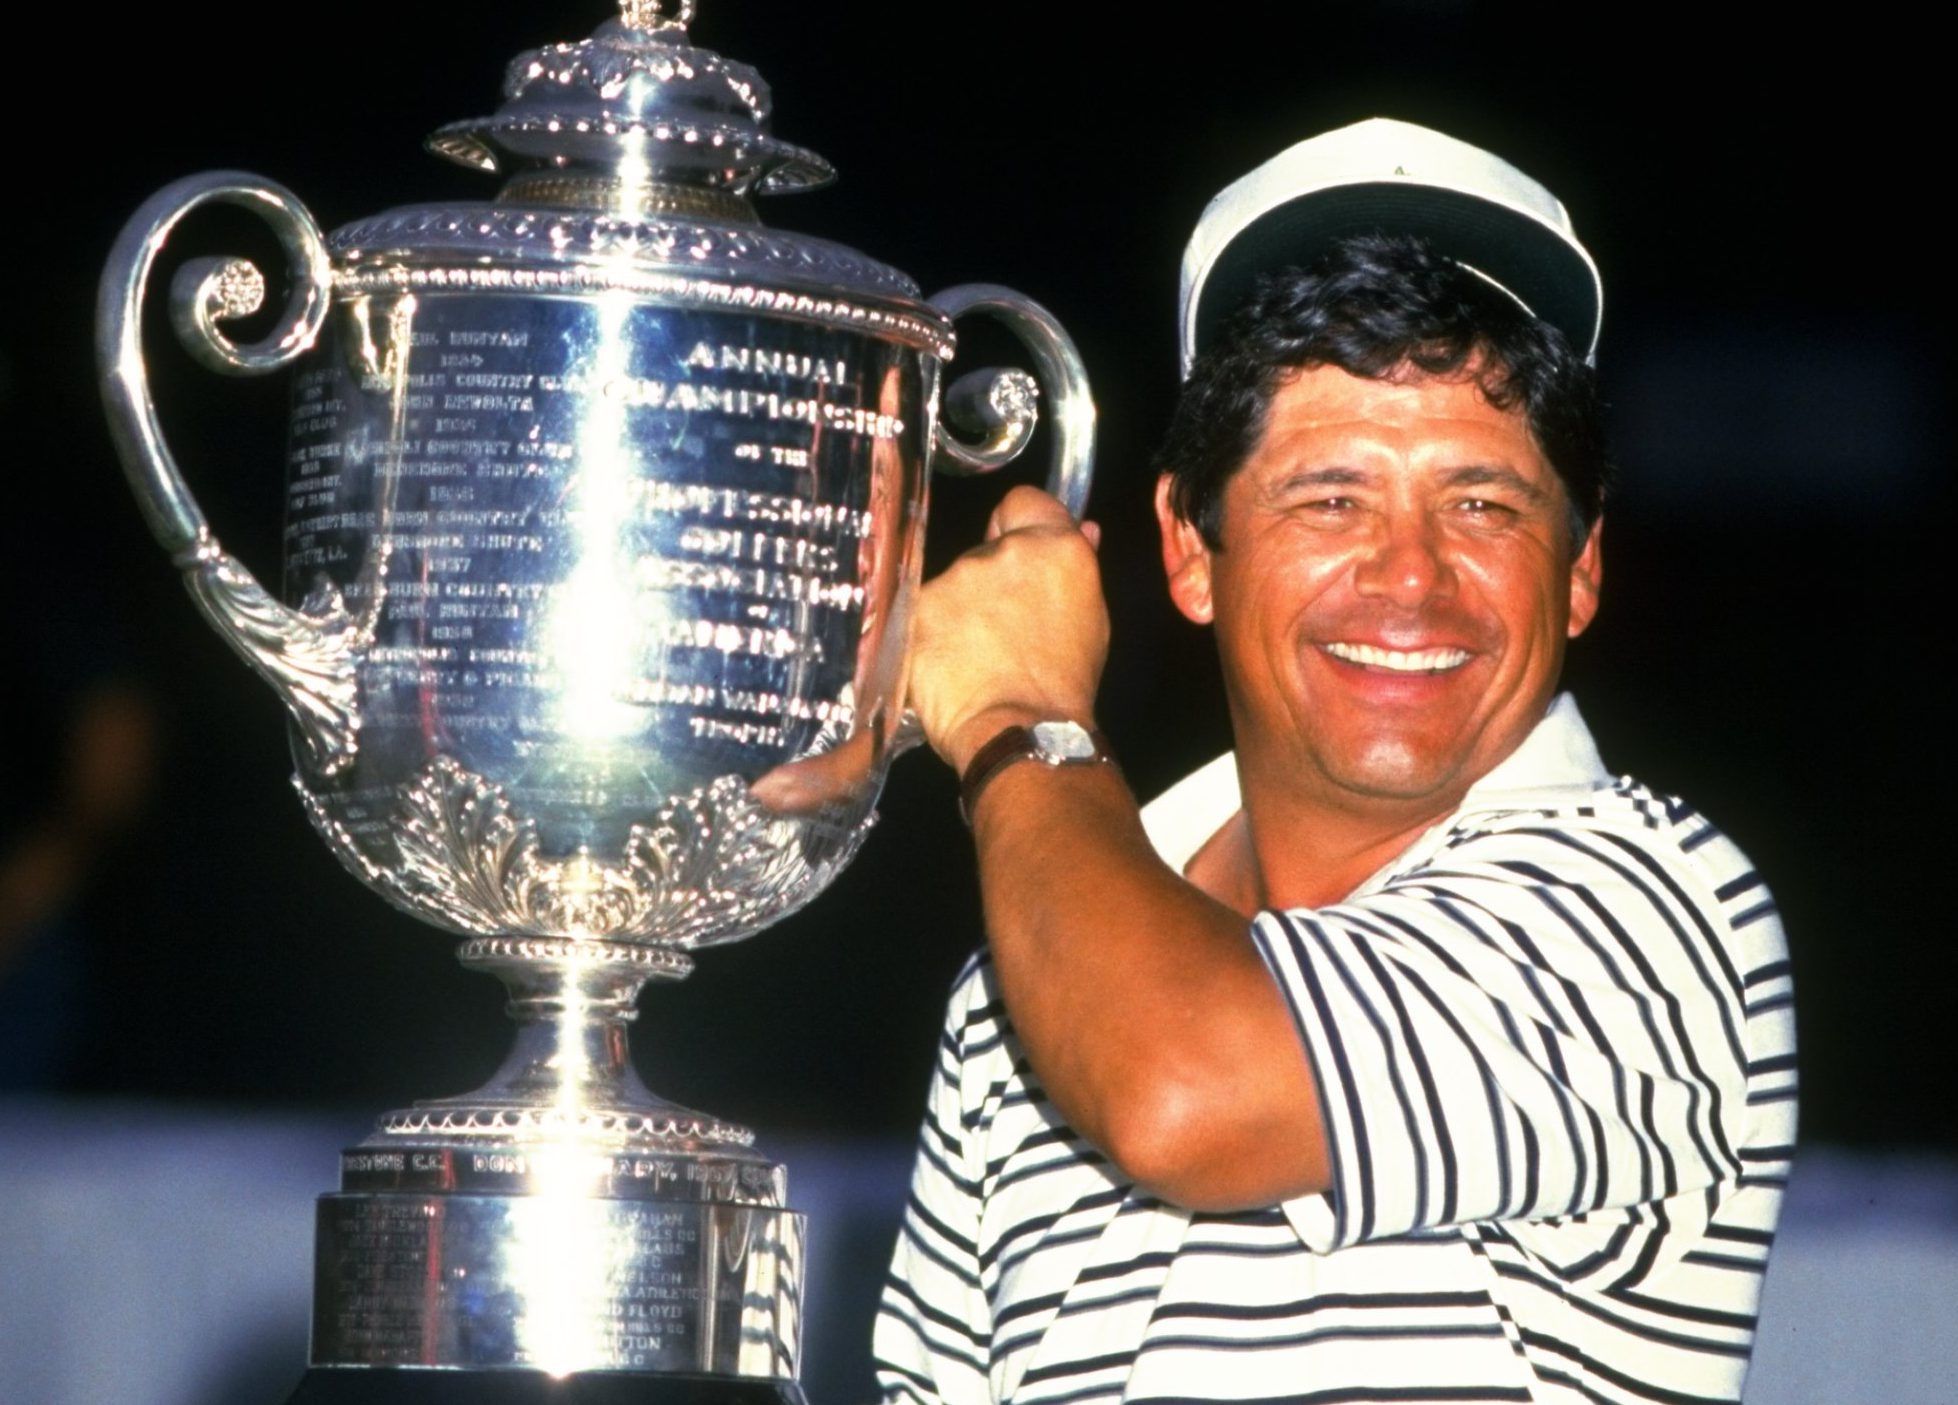 1984: Lee Trevino of the USA holds the trophy aloft after the USPGA Championships at the Shoal Creek Country Club in Birmingham, Alabama, USA. Trevino won the event with a score of 273. Mandatory Credit: David Cannon/Allsport